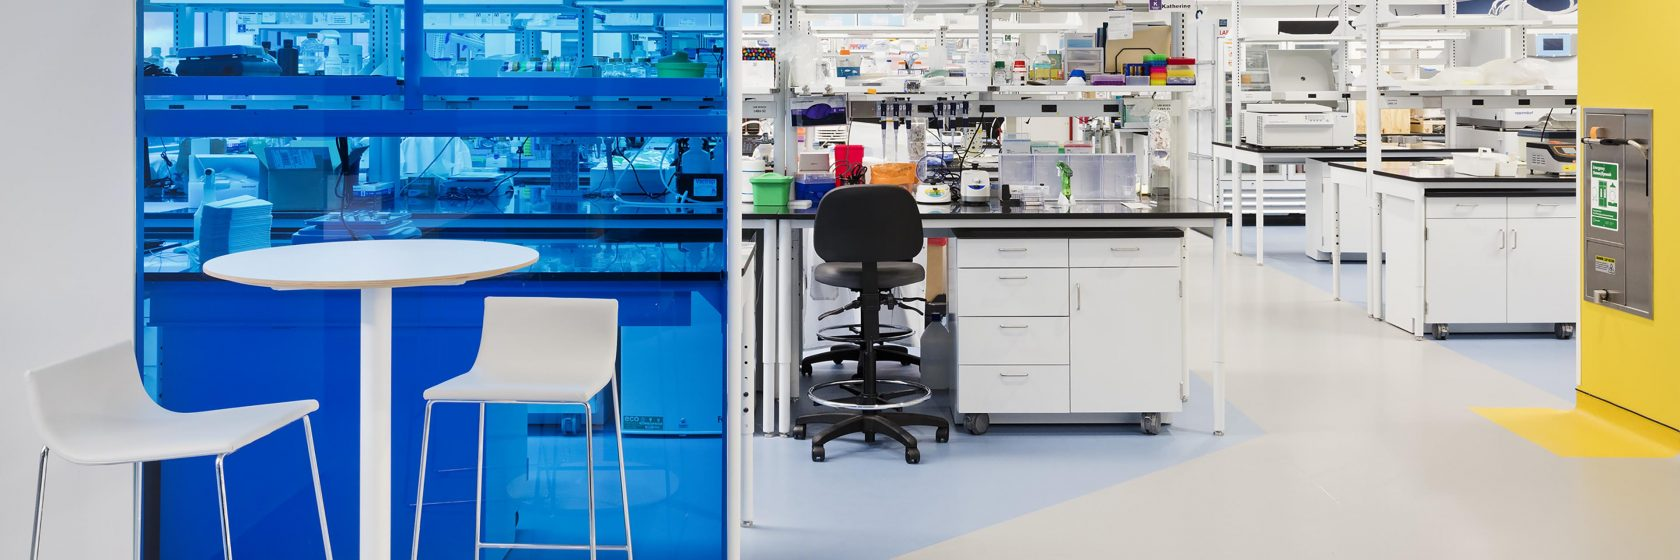 collaboration station in a lab